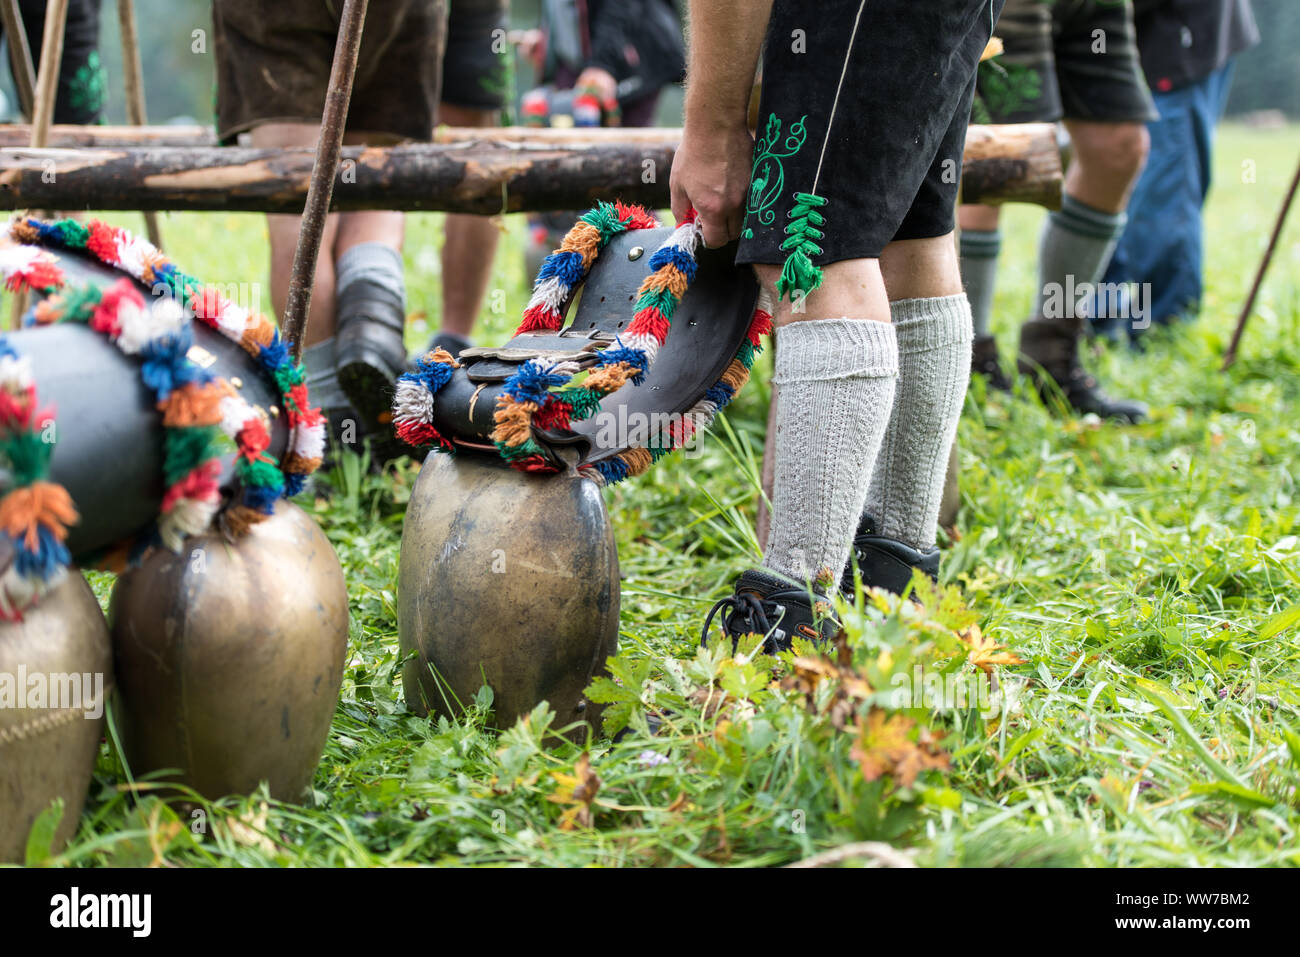 Lederhose High Resolution Stock Photography And Images Alamy